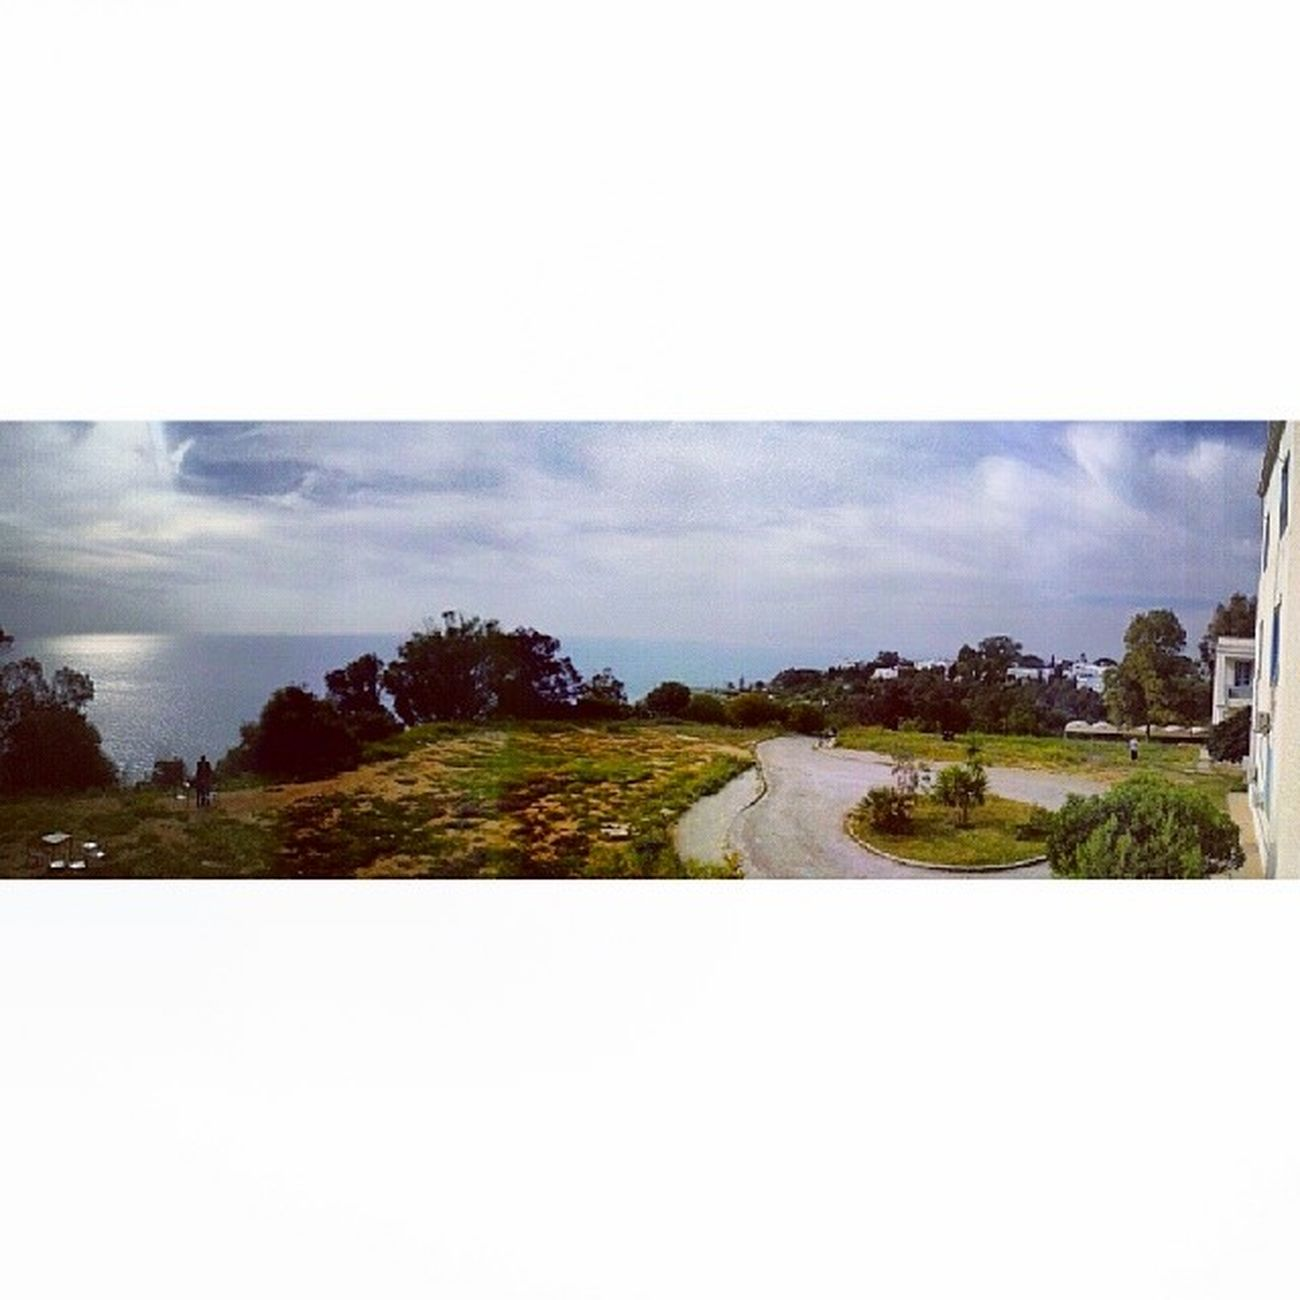 Idreamoftunisia InstagramTunisie Instagramtn Cloudy sky beach awesome stunning view IHEC Carthage Tunisia 100daysofhappiness 100happydays day5 studying in such a beautiful place :)